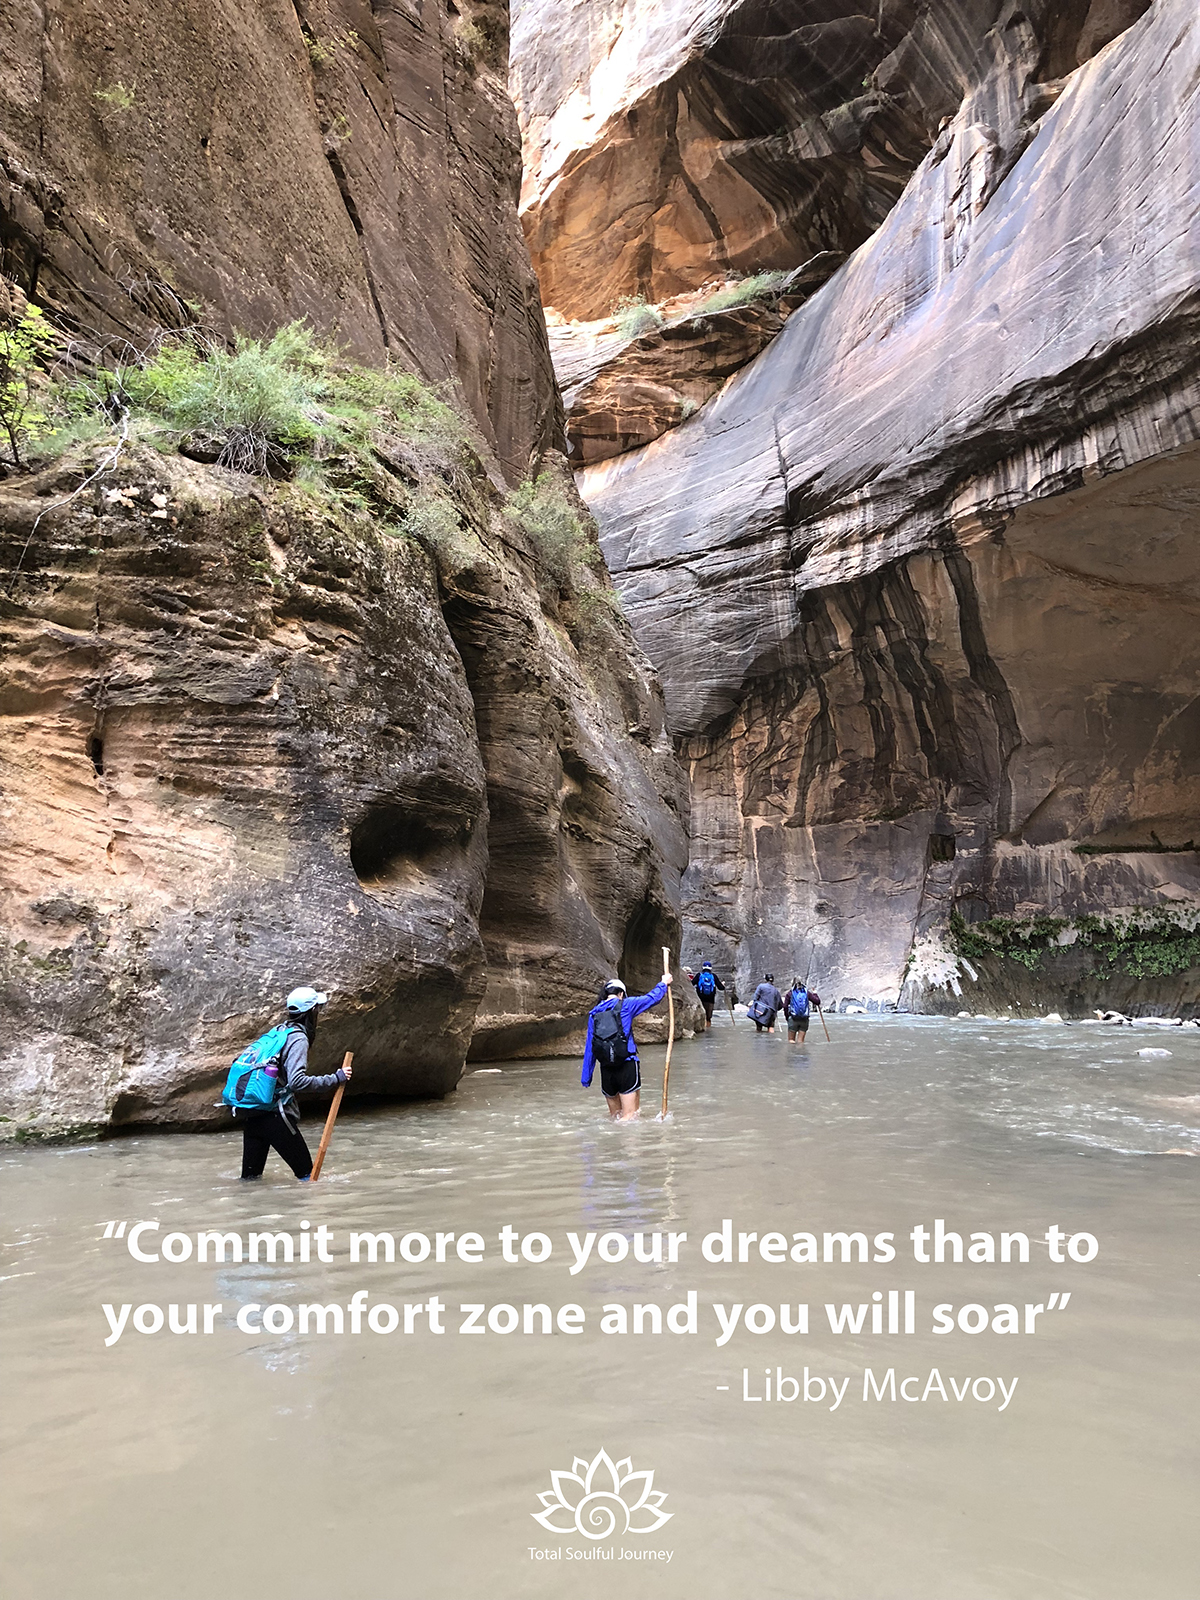 Hiking the Zion Narrows can be intimidating, but ultimately rewarding when you rise to the challenge of hiking up this river. Photography by Paul Garrett